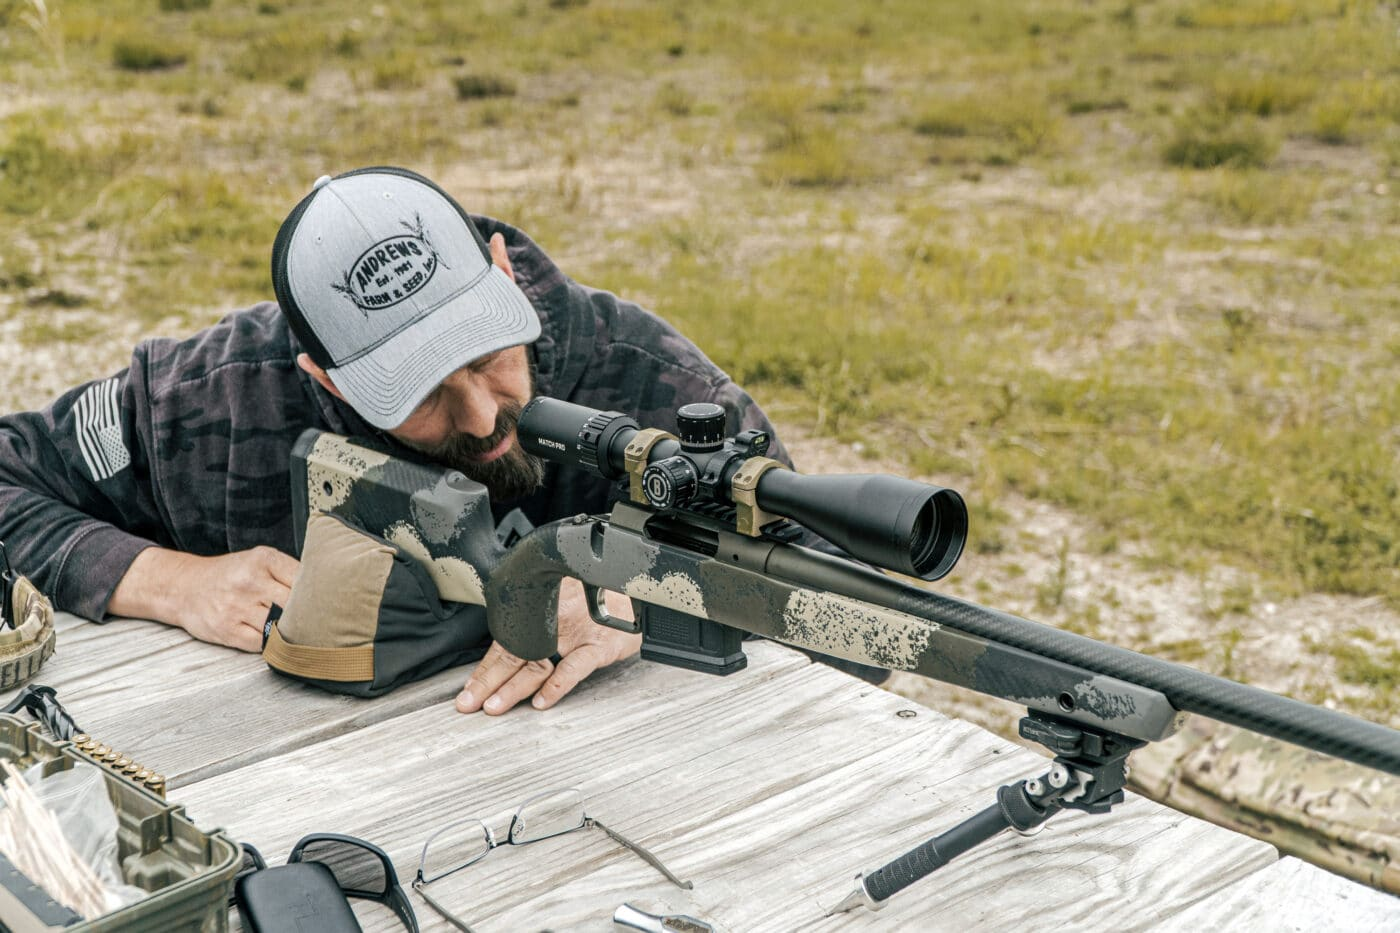 Man shooting a rifle at the range while sighting it in